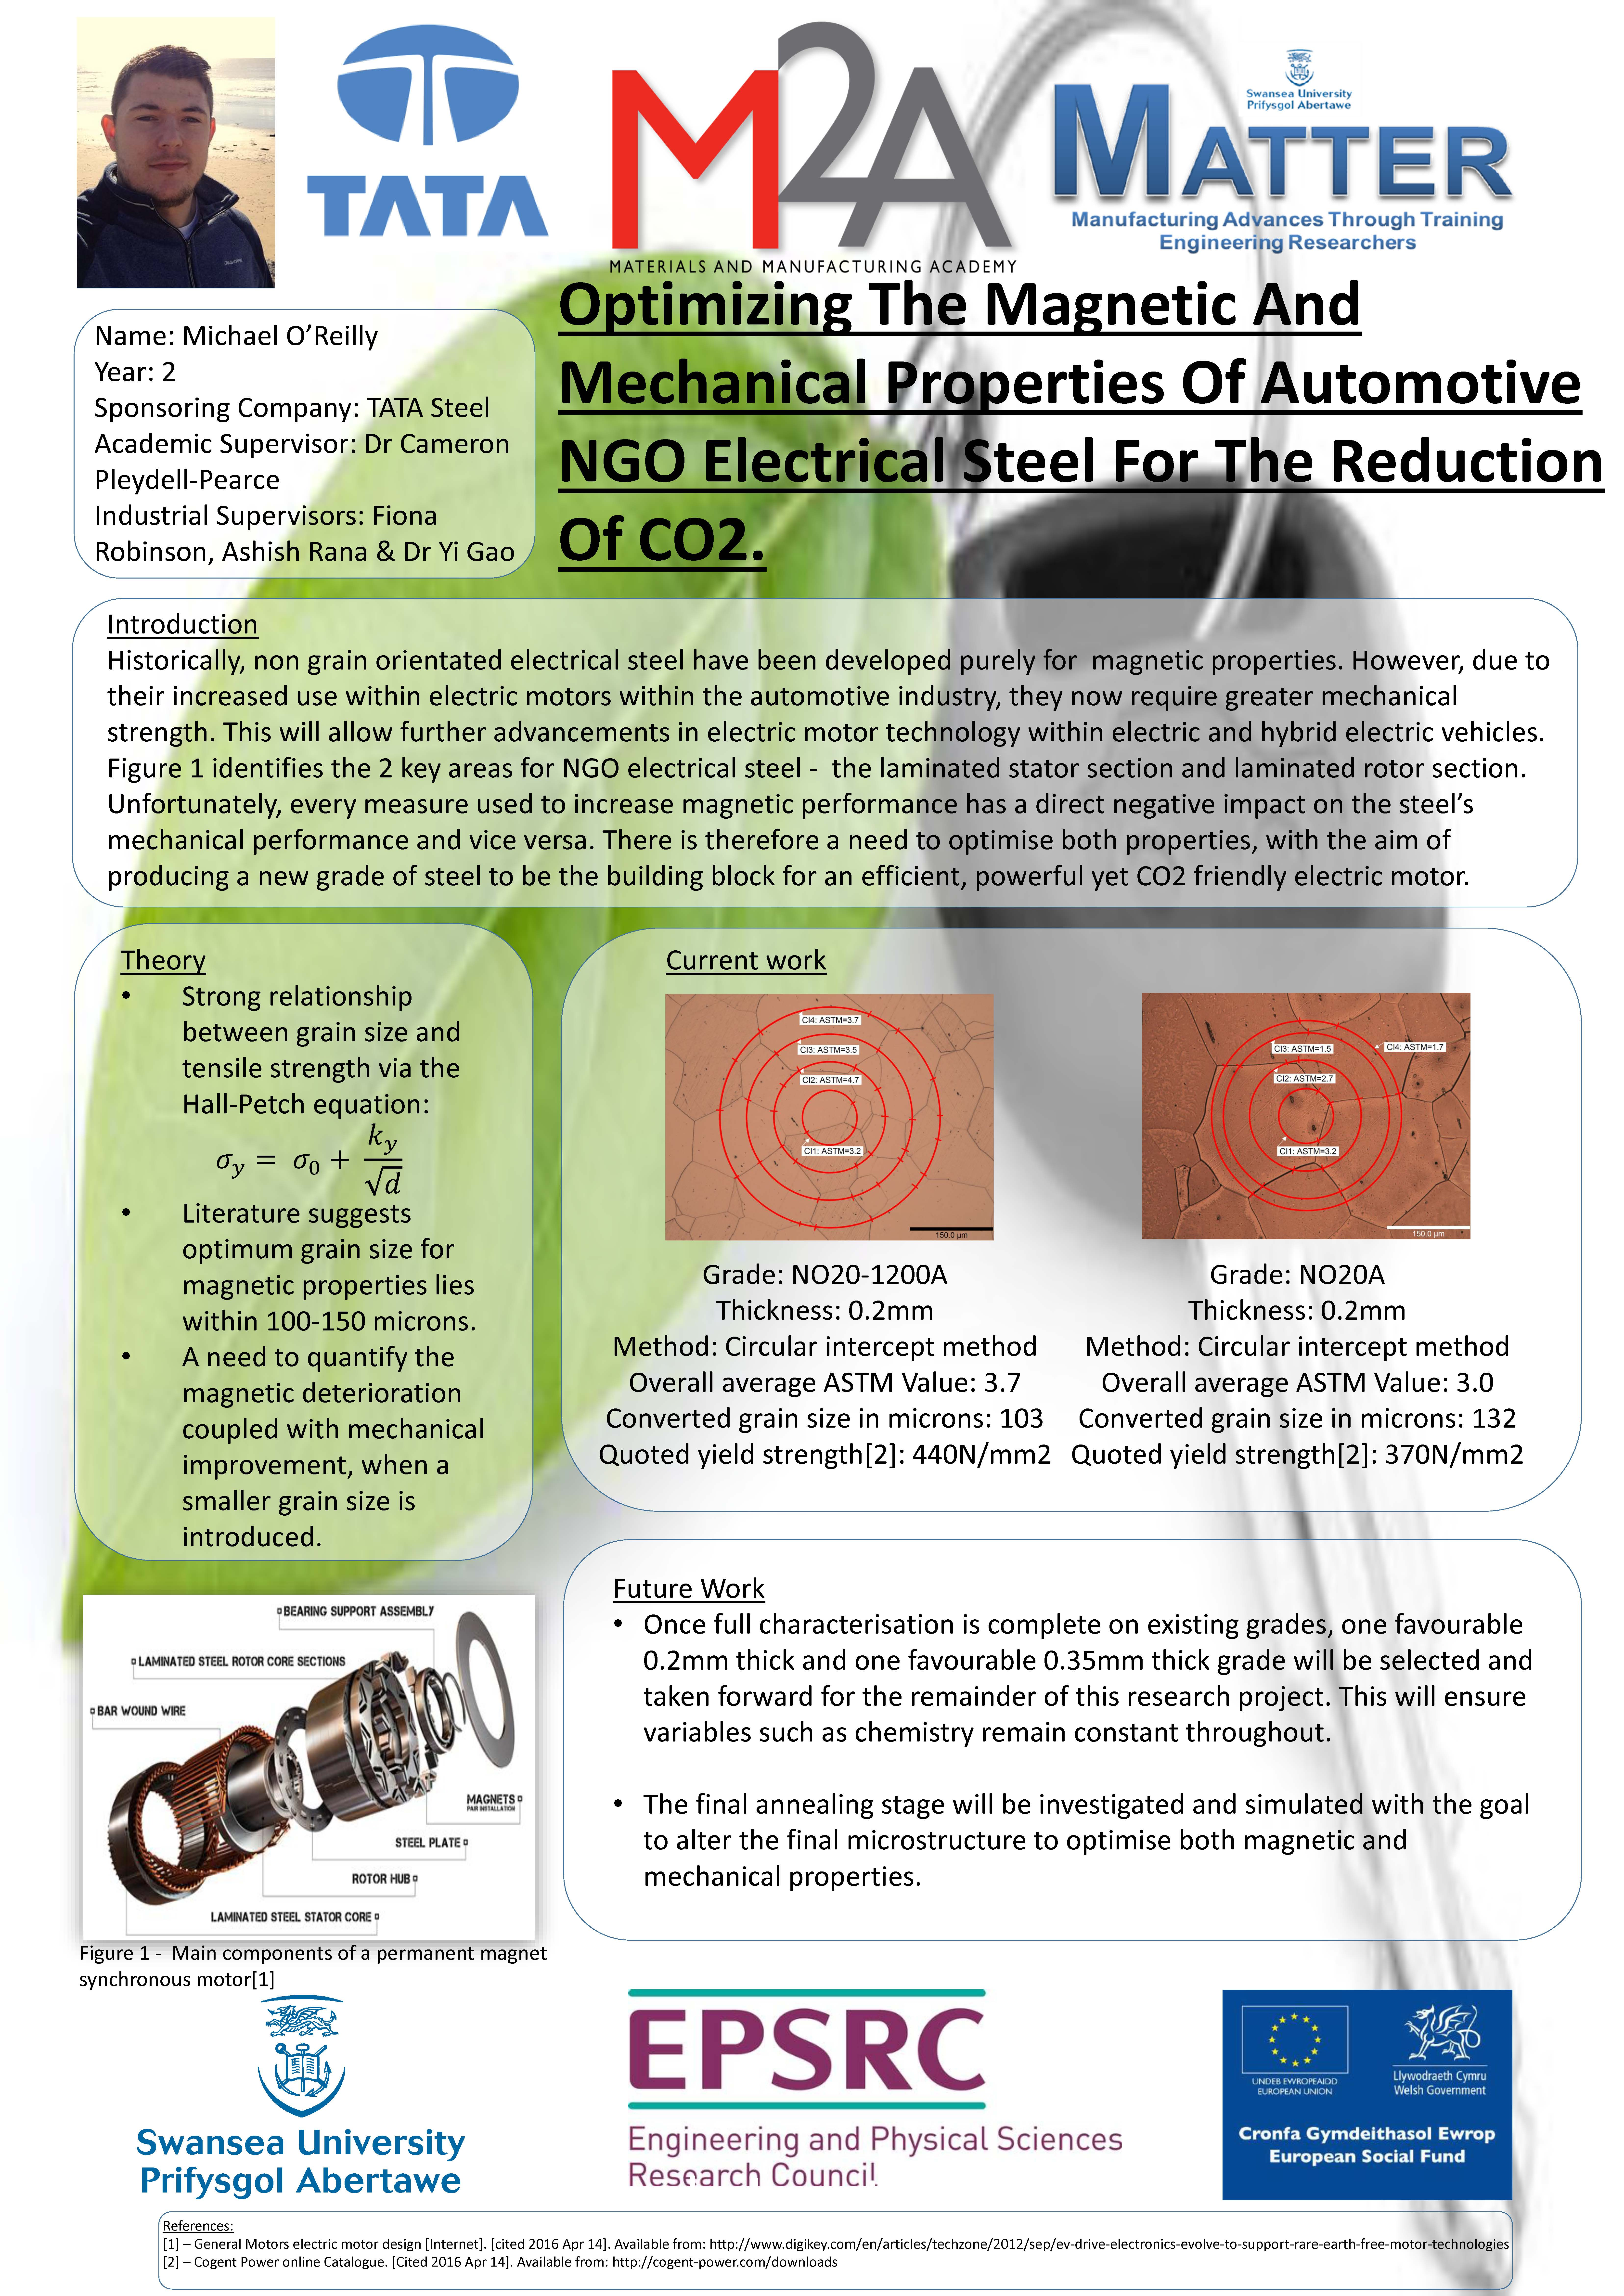 Optimizing The Magnetic And Mechanical Properties Of Automotive NGO Electrical Steel For The Reduction Of CO2